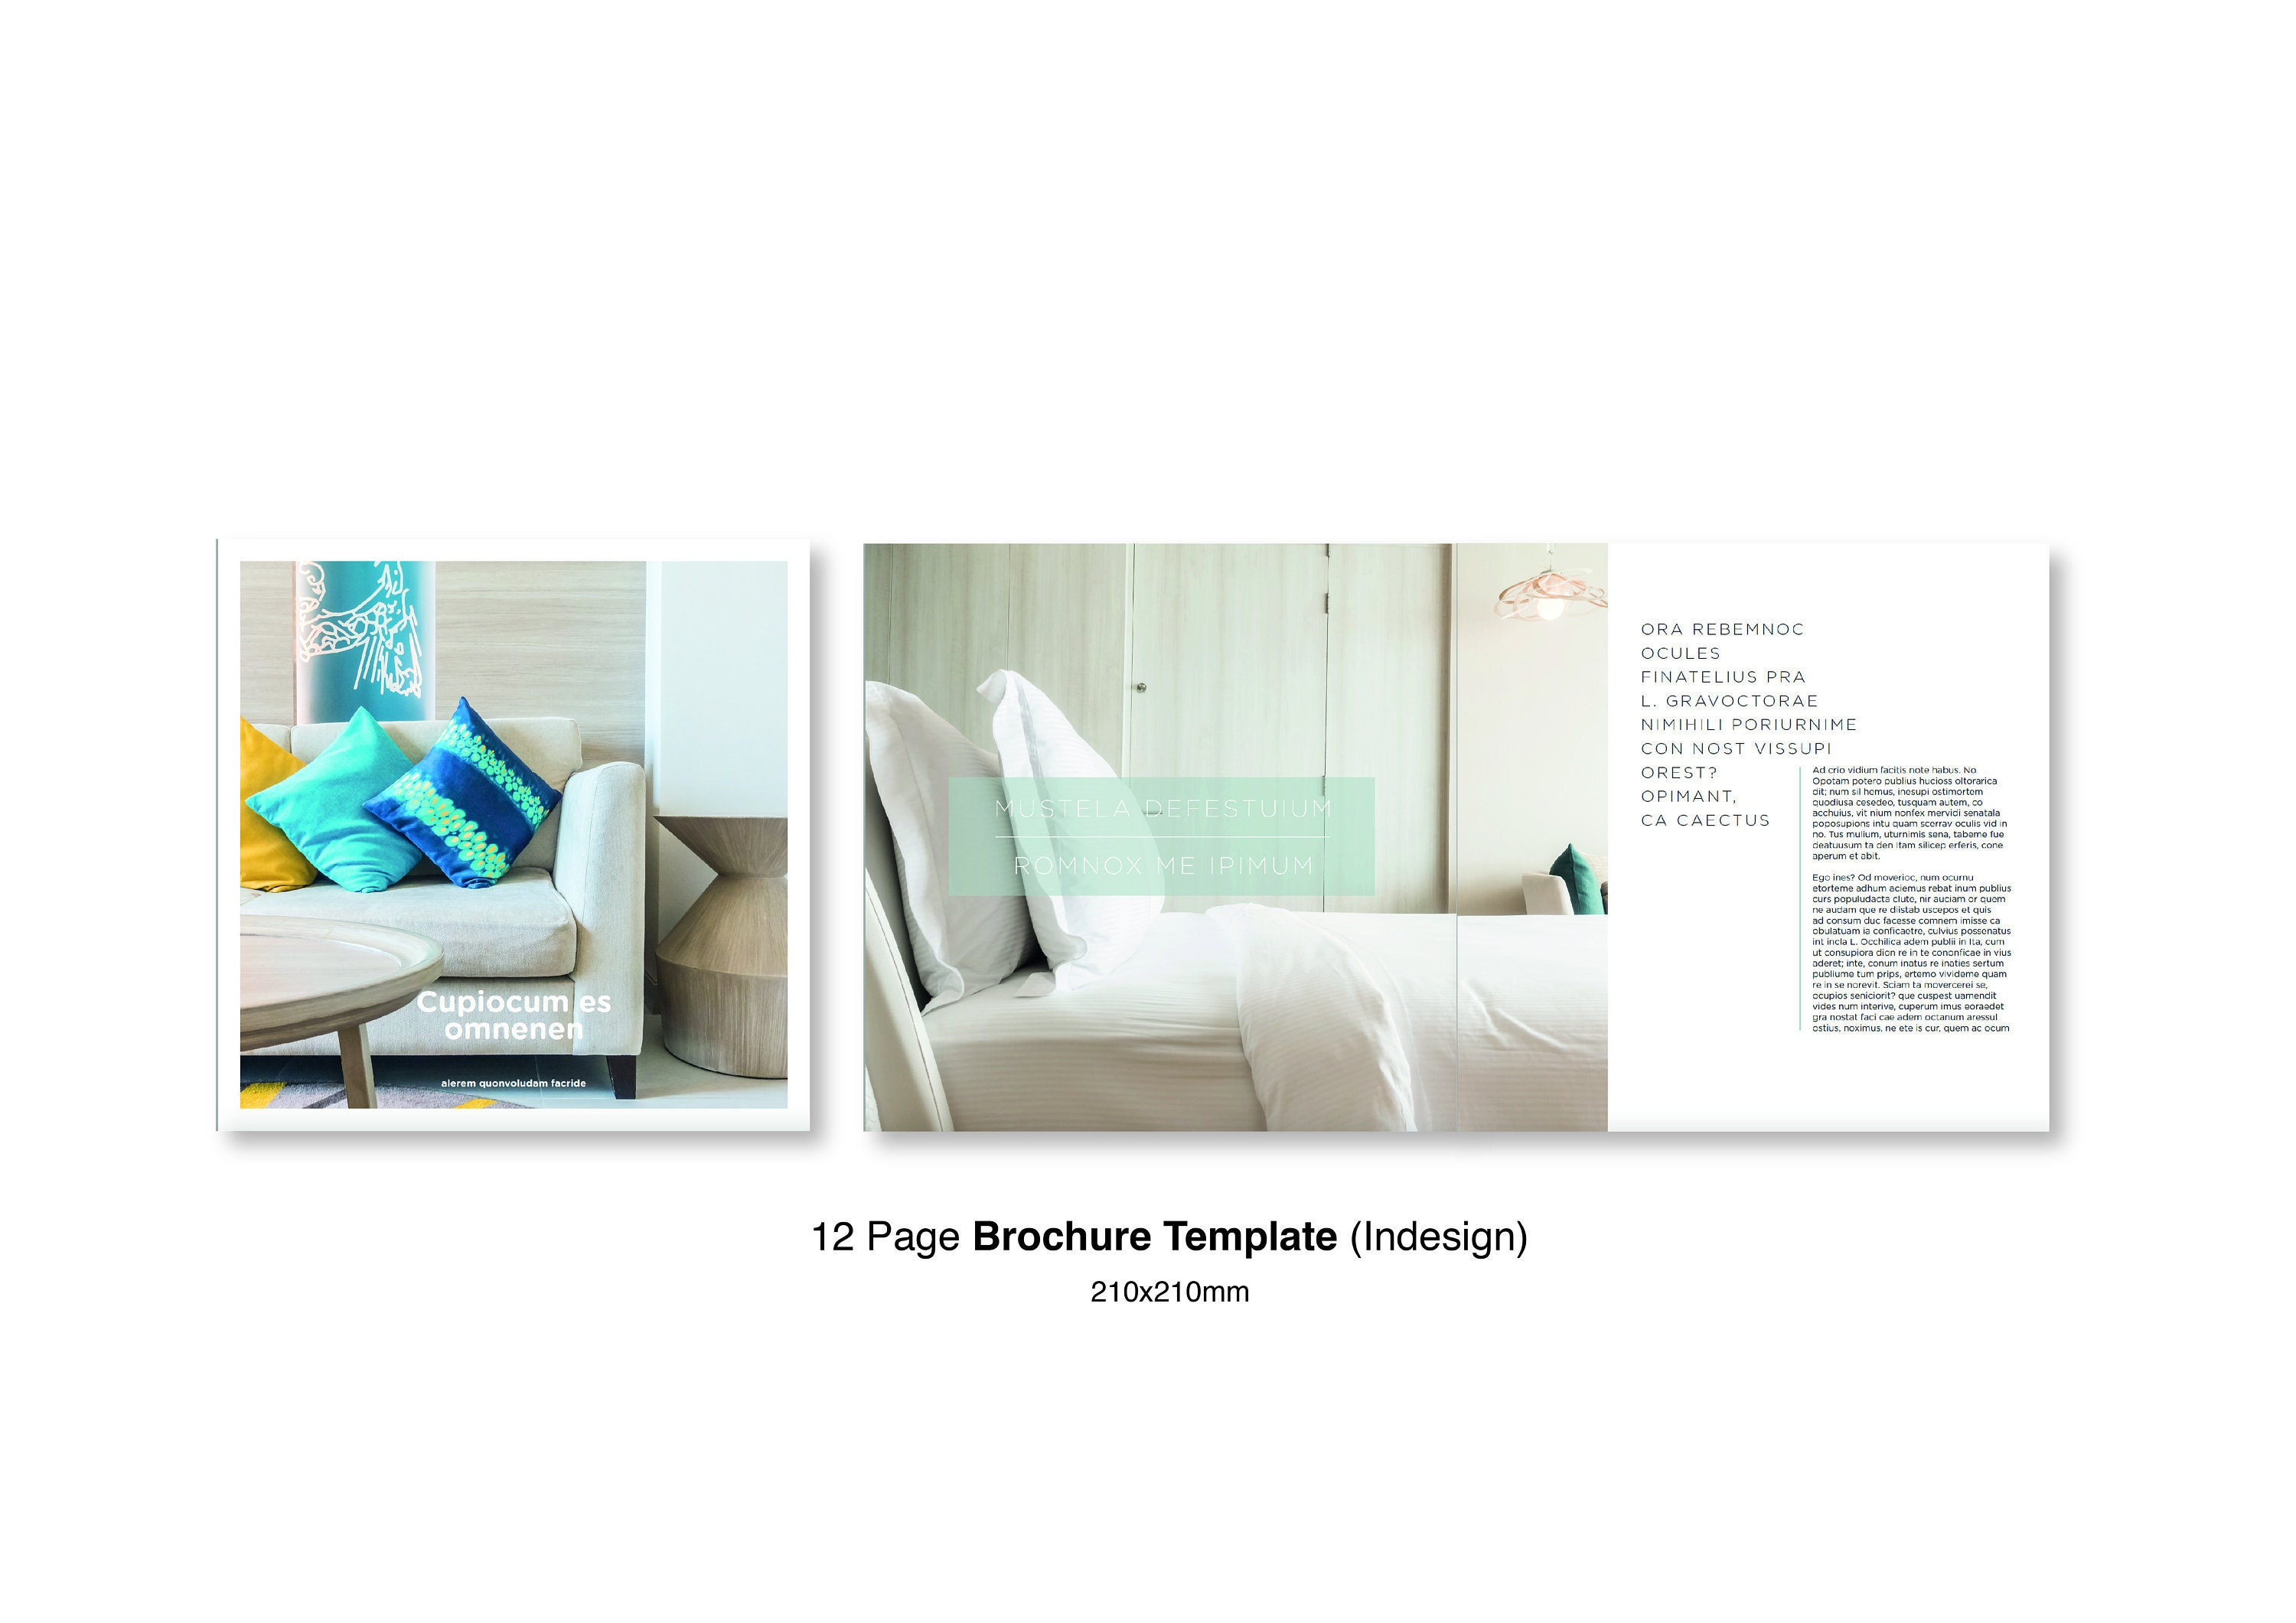 12 Page Brochure Design Template with a 5min Tutorial